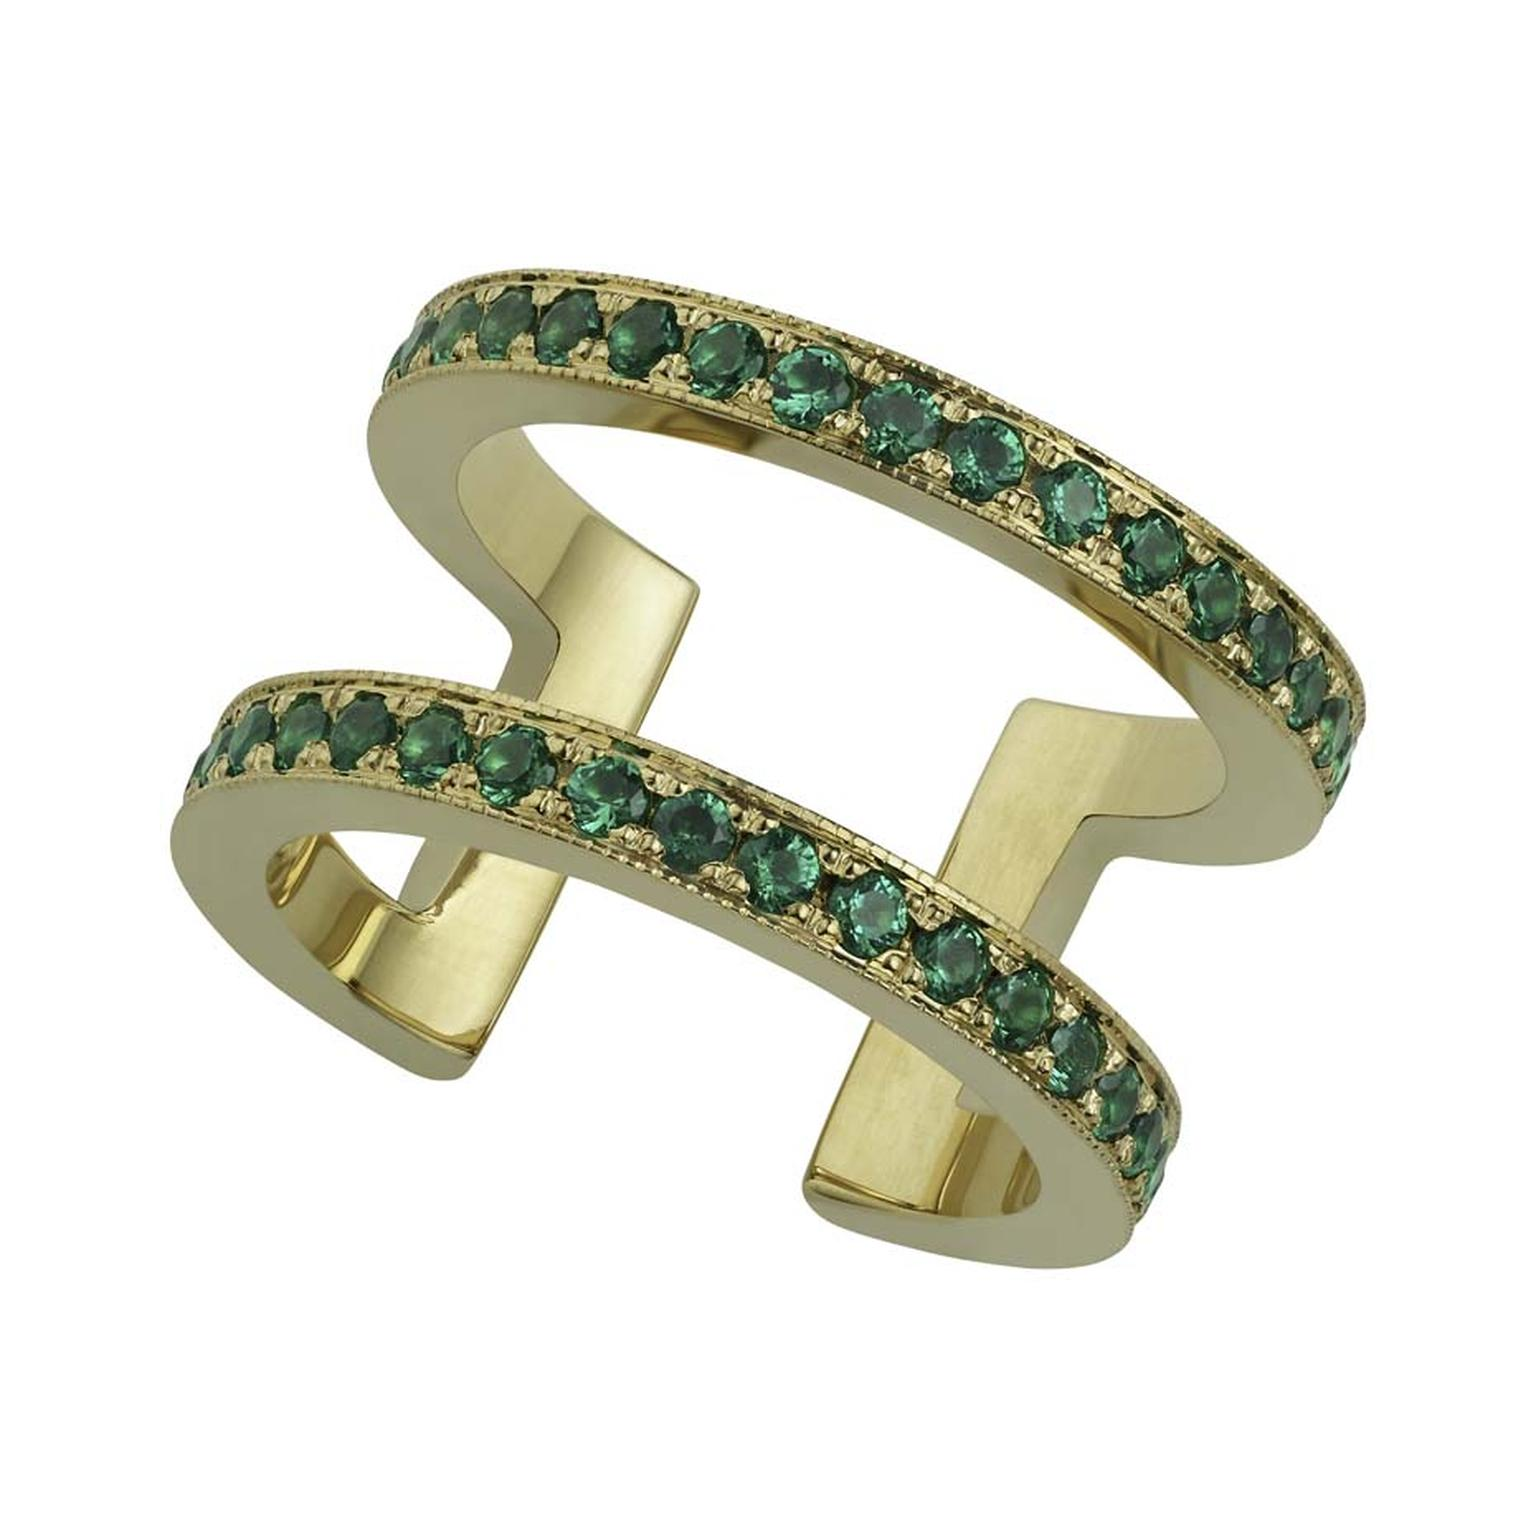 Misahara Korali statement ring has a thicker yellow gold band, set with emeralds.